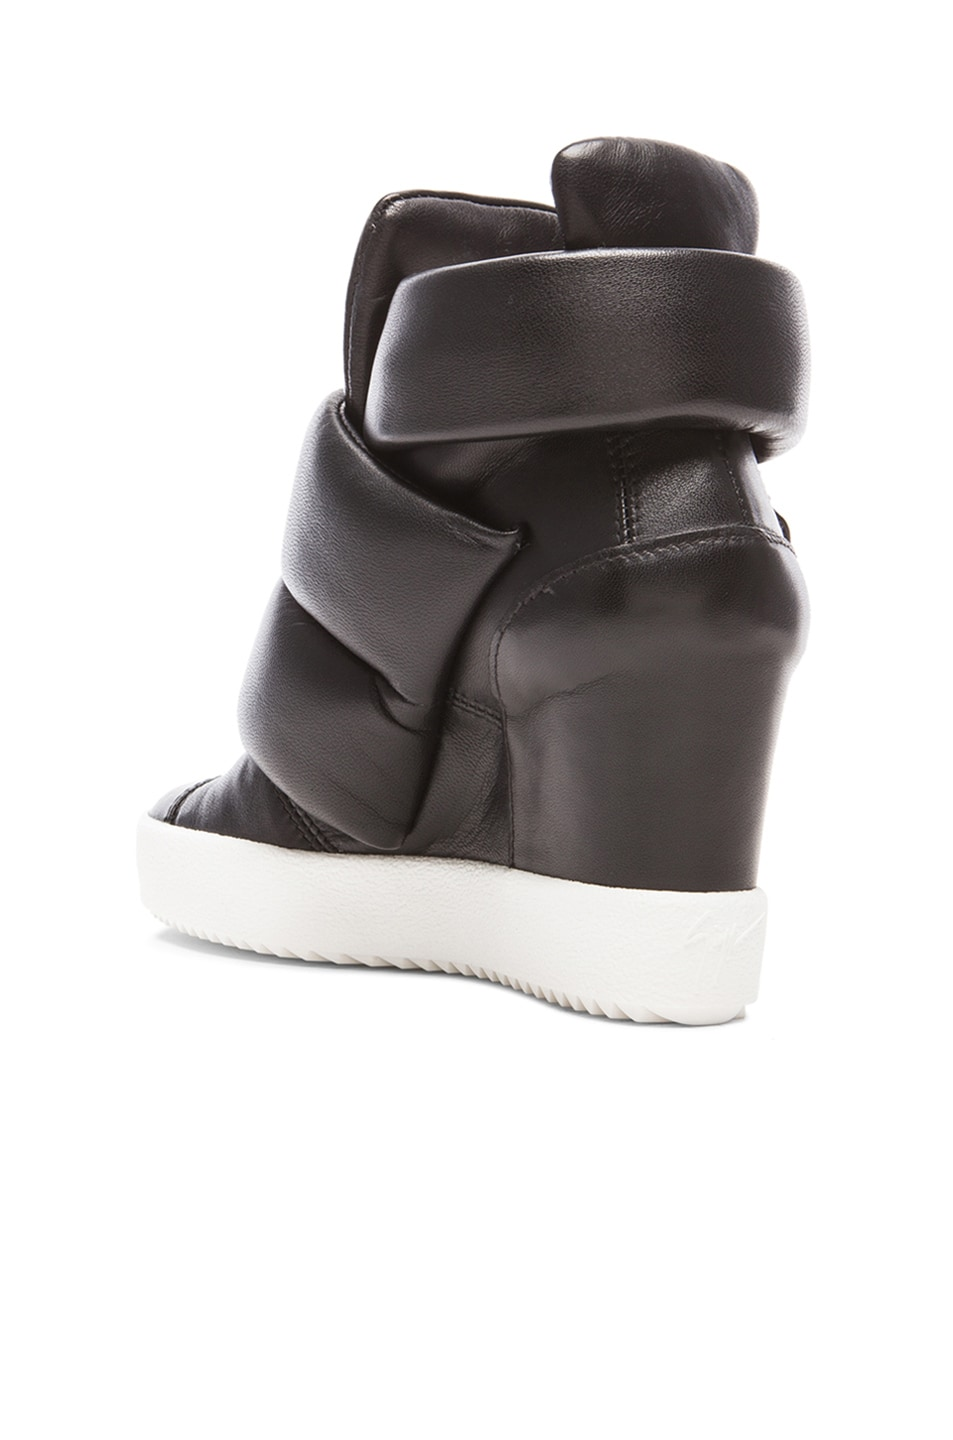 Image 3 of Giuseppe Zanotti x Kid Cudi Double Strap Wedged Leather Sneakers in Black